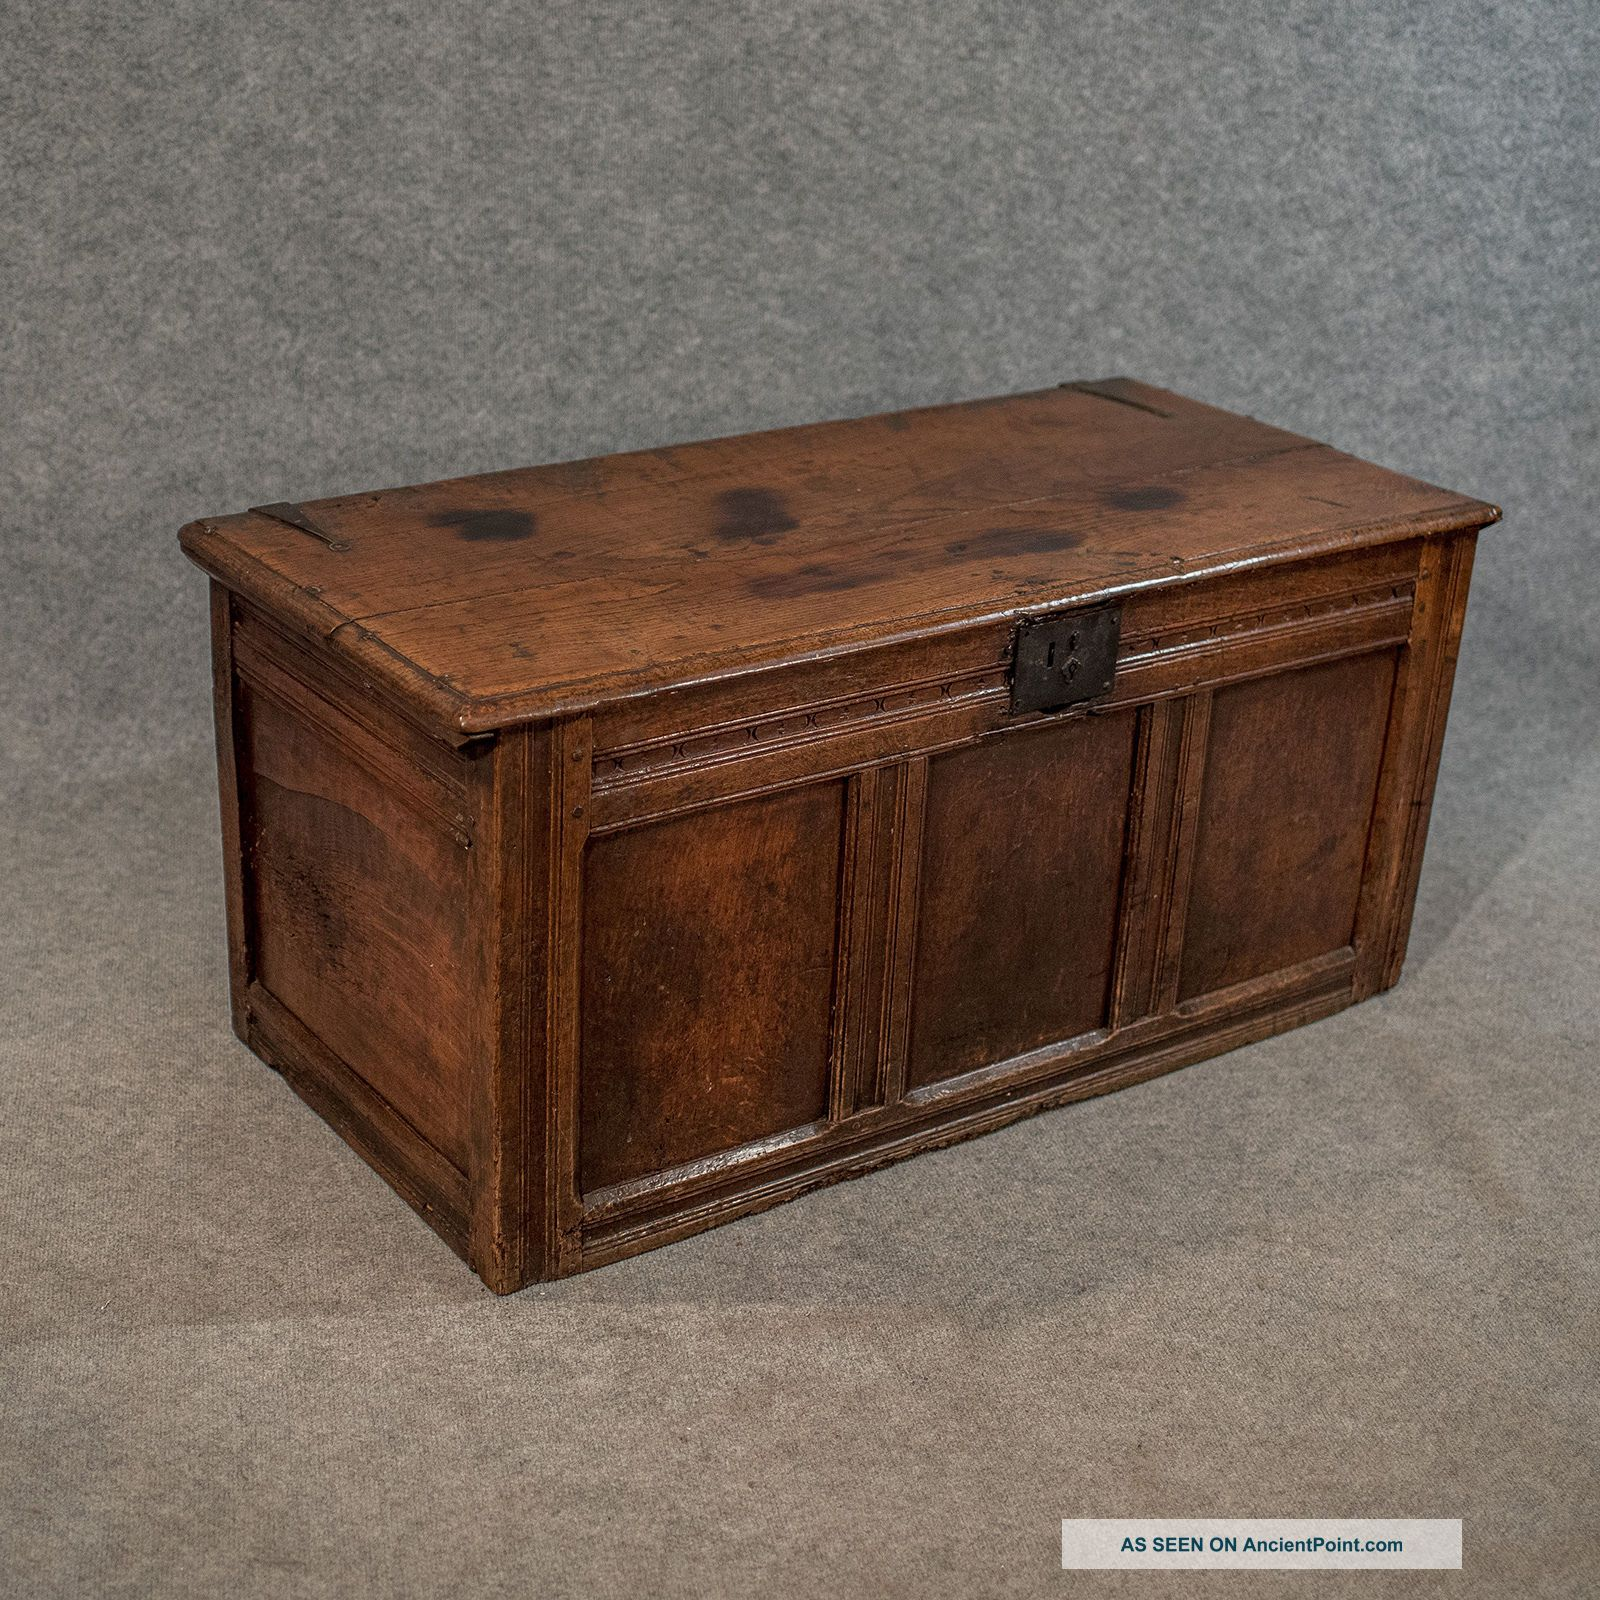 Antique Small Oak Coffer Chest Storage Trunk English C1700 Coffers photo